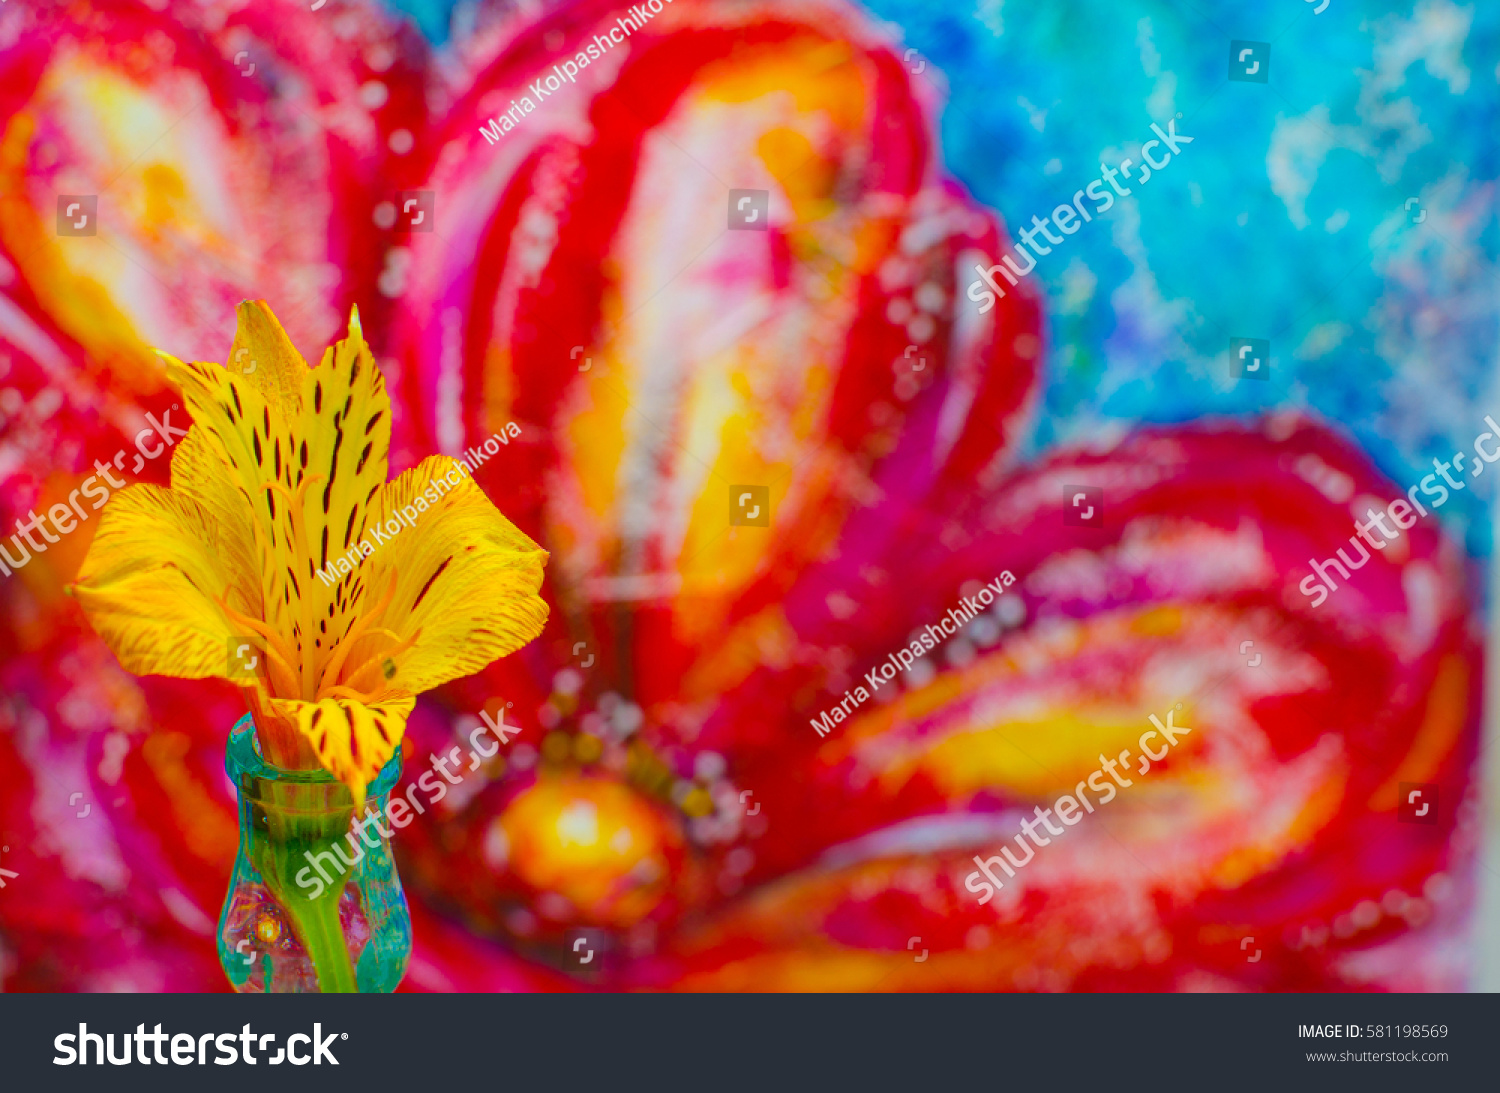 Live Natural Real Beauty Yellow Bright Orange Flower Bud In The Foreground,  On A Background